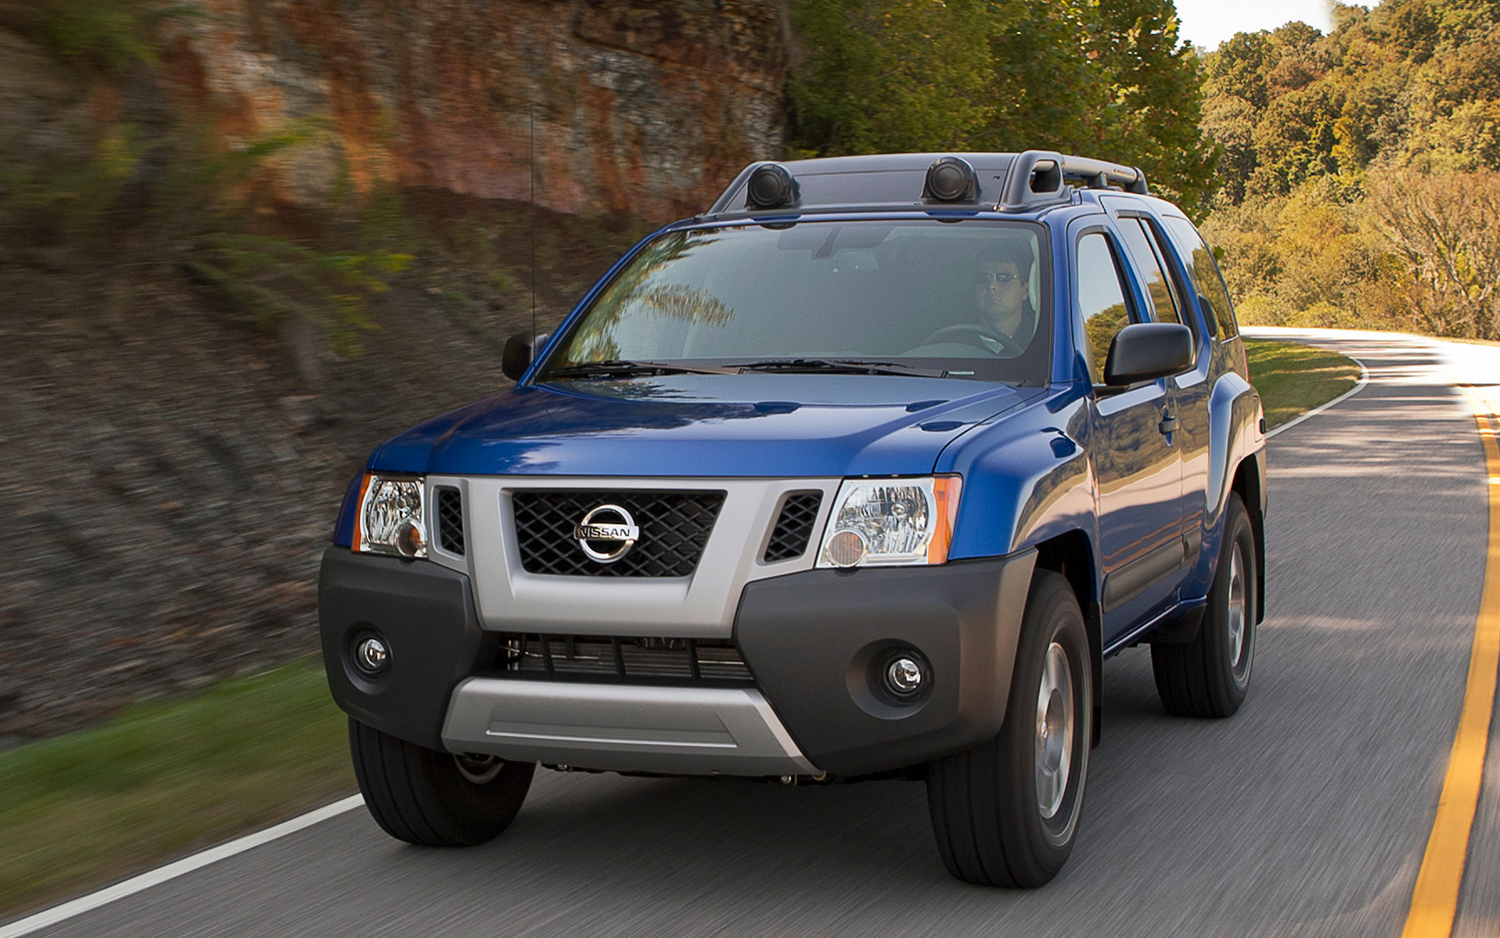 2013 nissan xterra information and photos zombiedrive 2013 nissan xterra 13 nissan xterra 13 vanachro Image collections